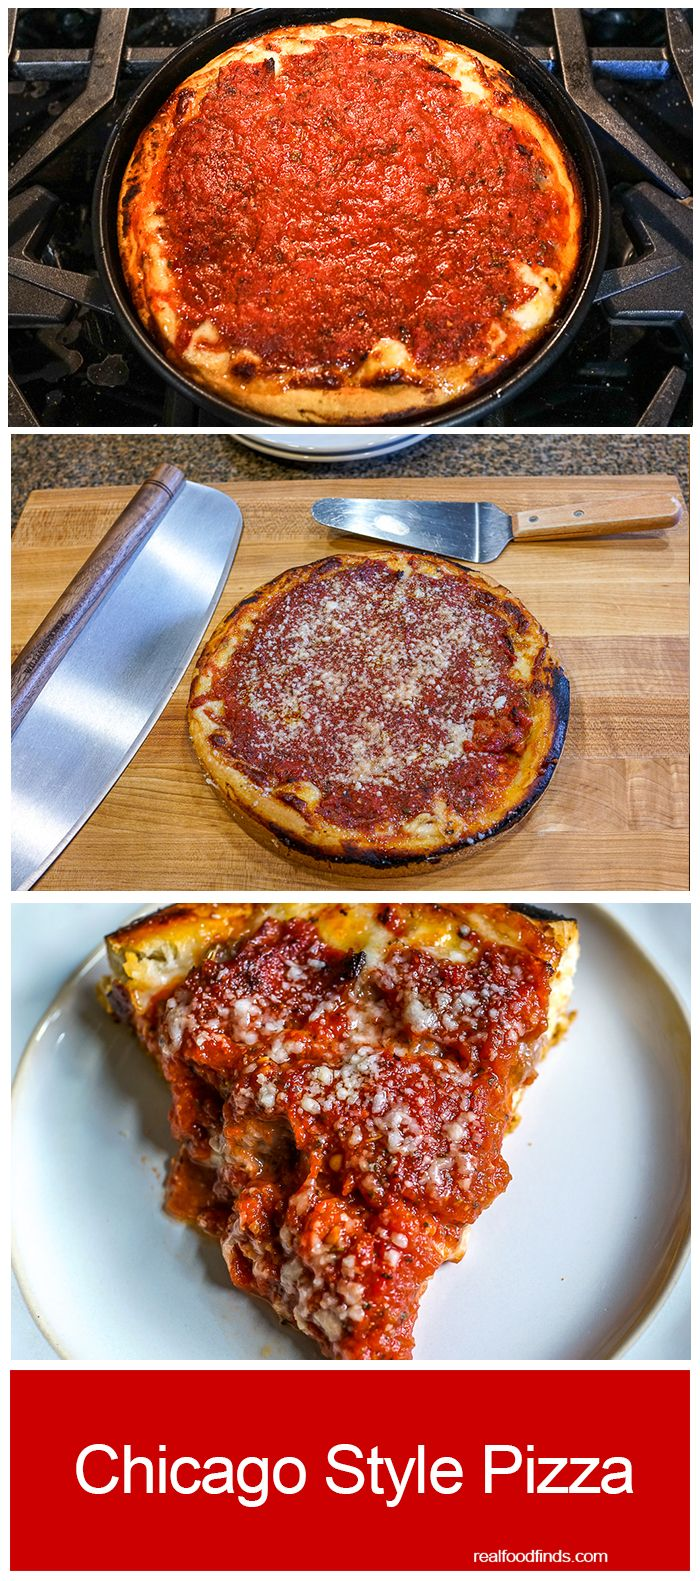 Chicago Style Pizza by Real Food Finds